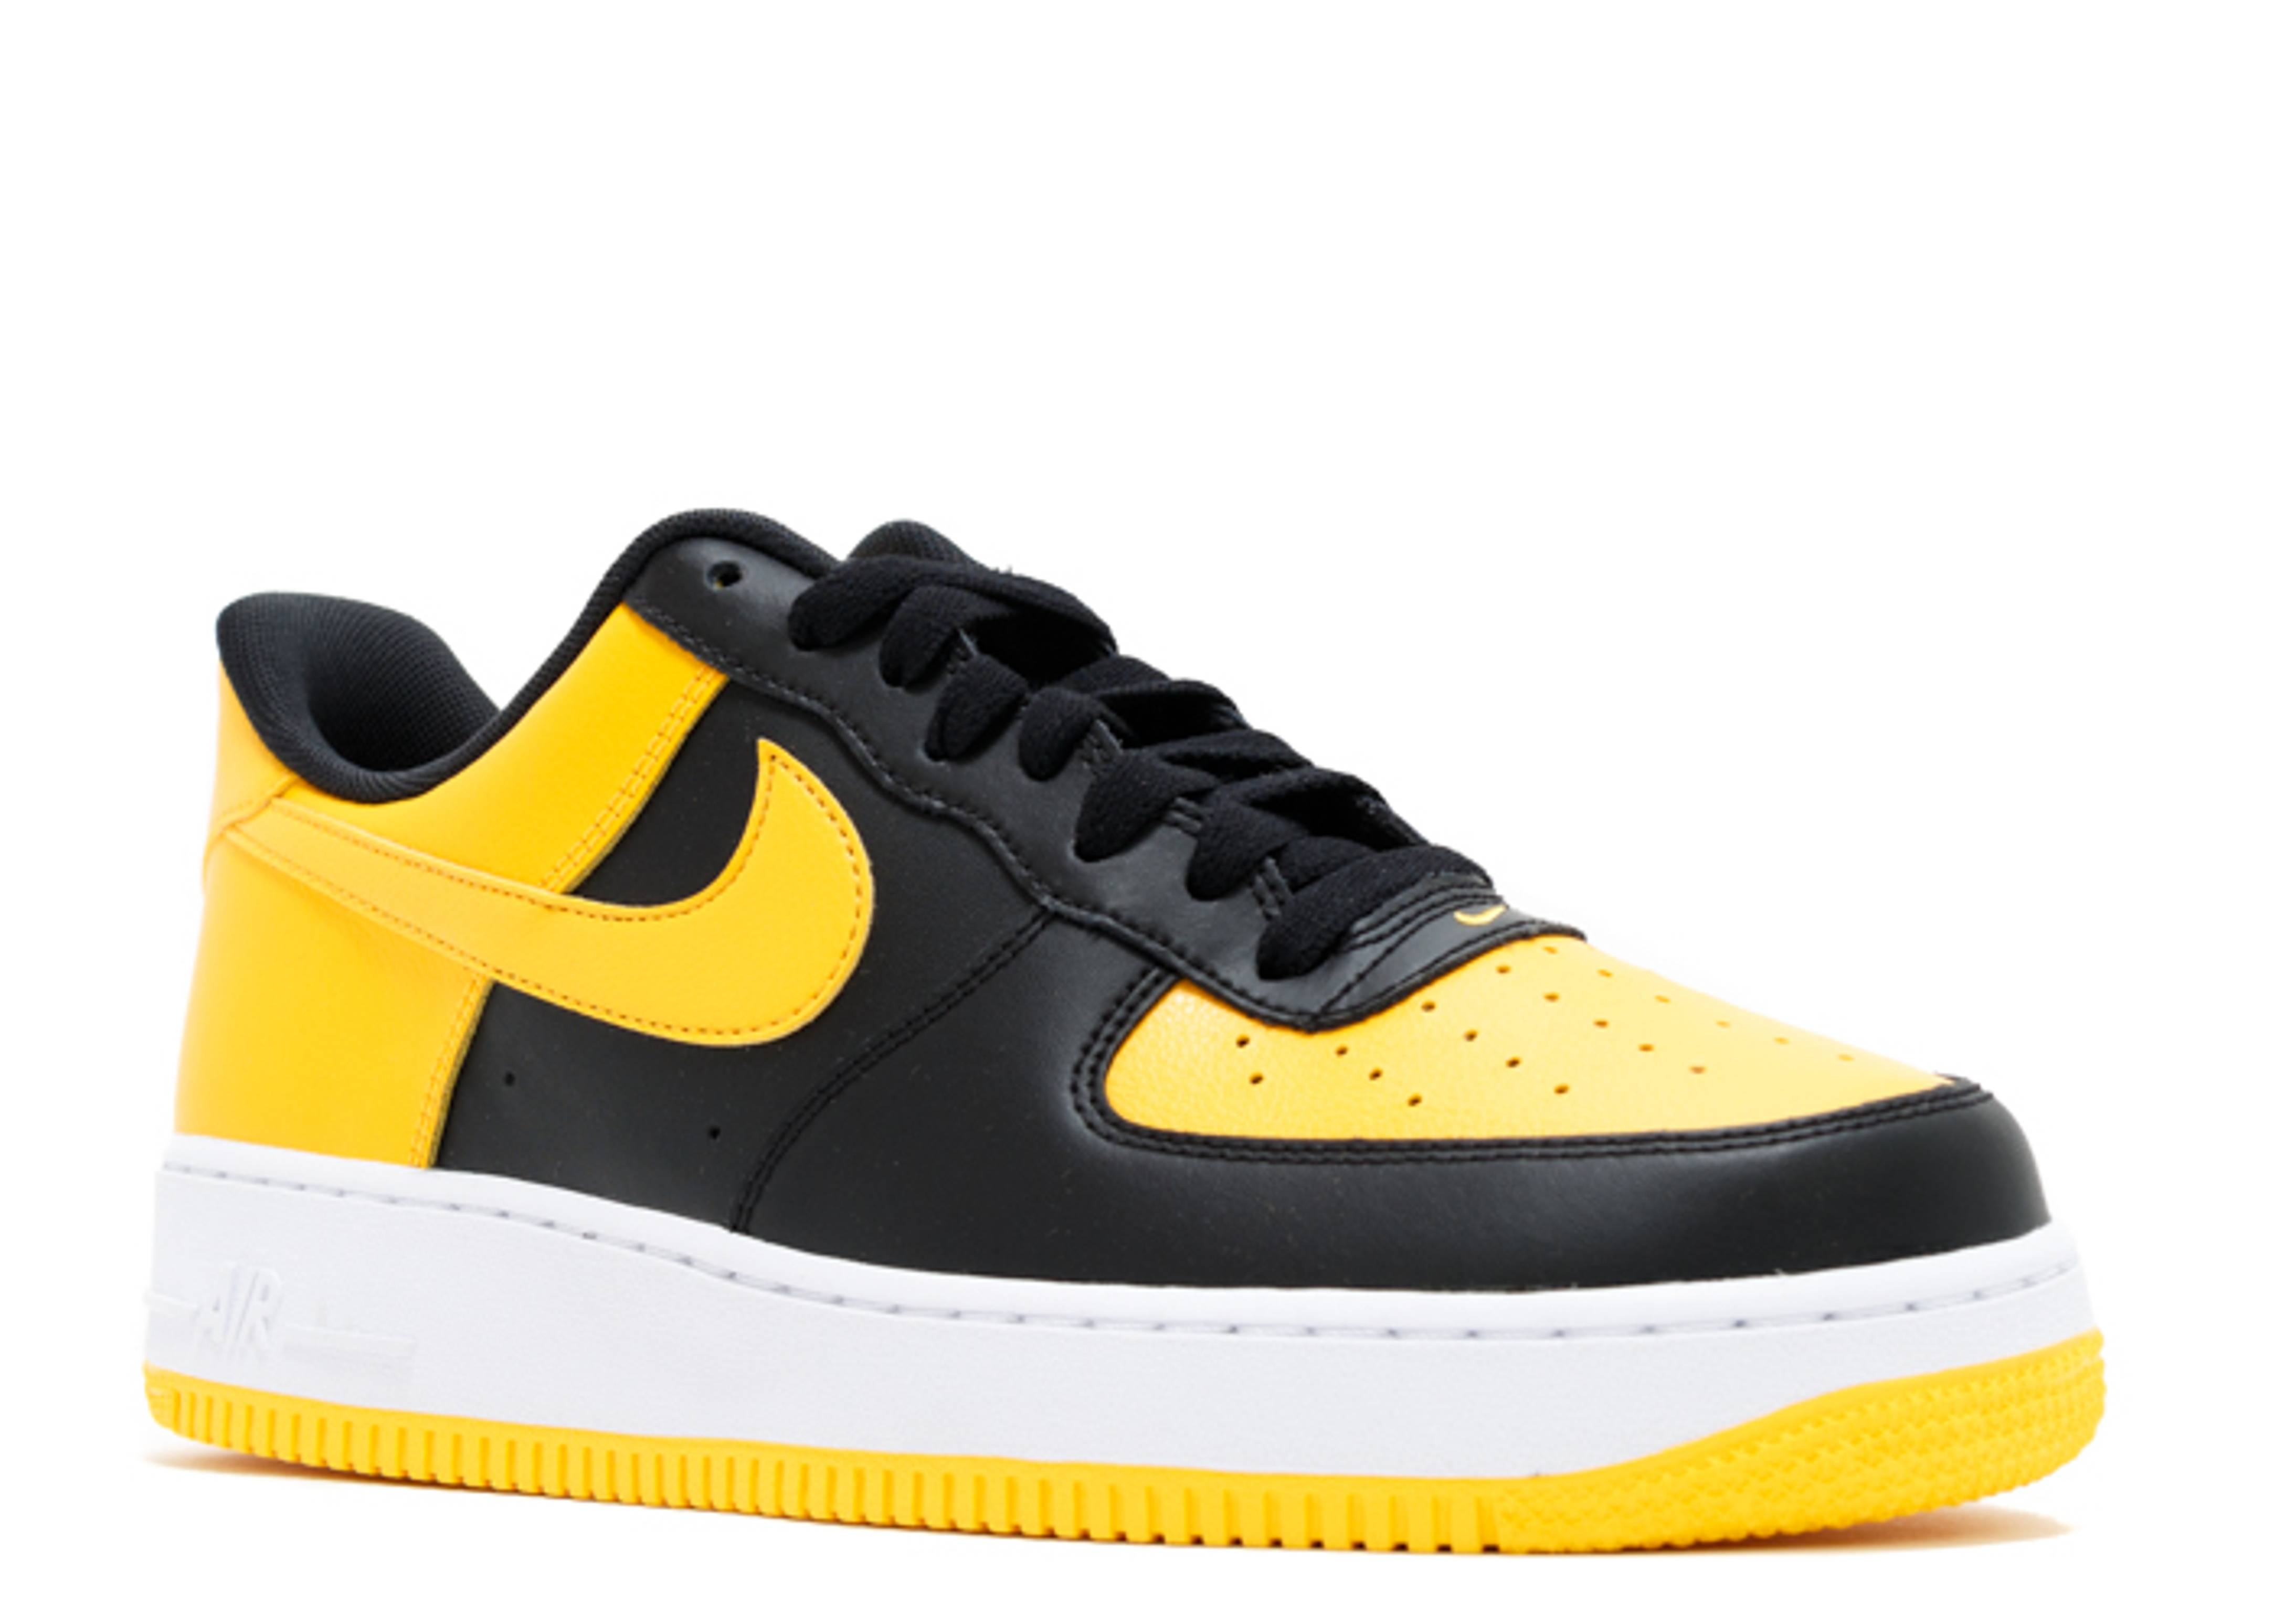 black and yellow air force 1 high top